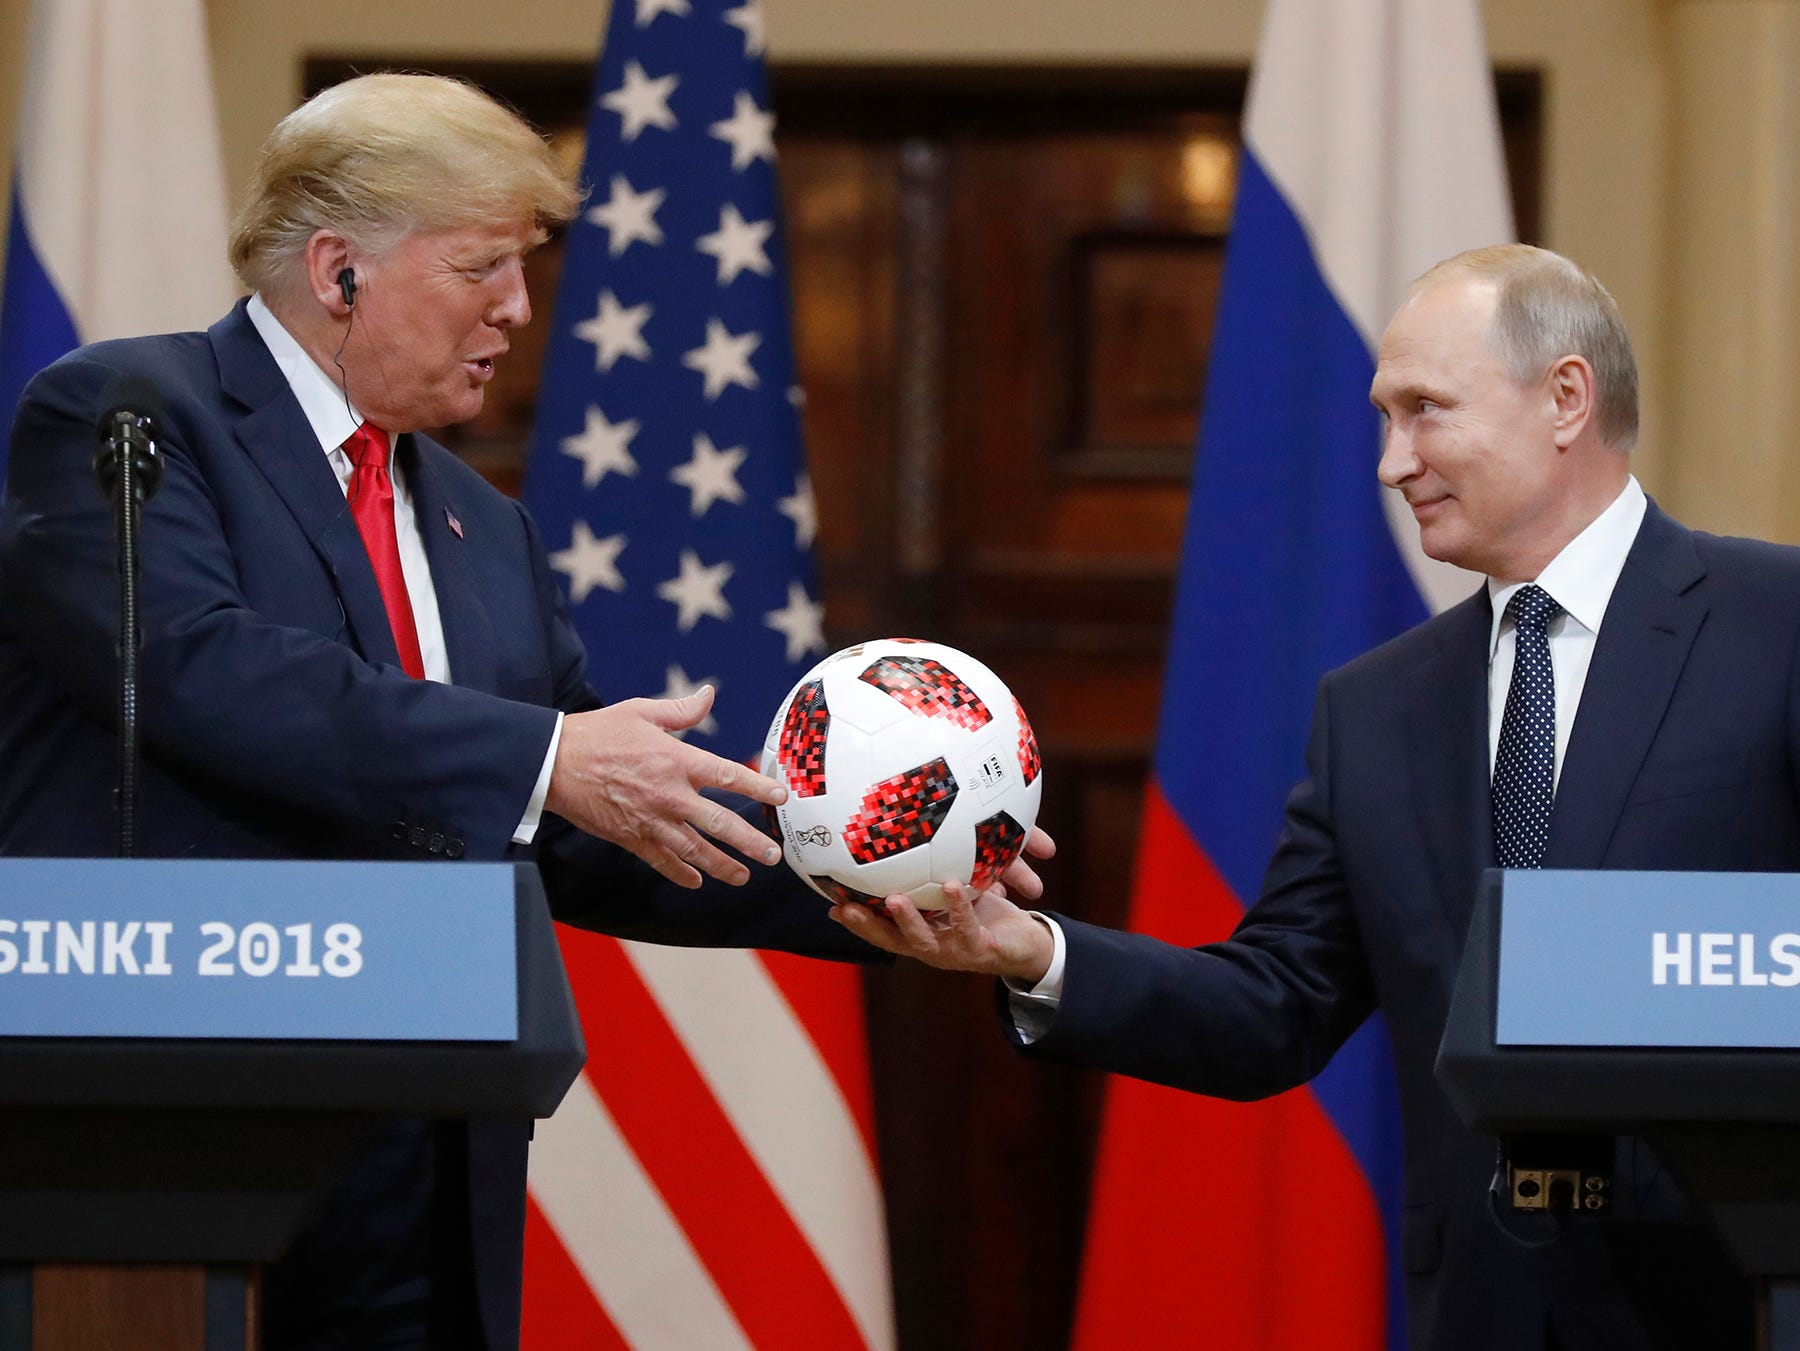 Russian President Vladimir Putin gives a soccer ball to U.S. President Donald Trump, left, during a press conference after their meeting at the Presidential Palace in Helsinki, Finland, Monday, July 16, 2018.